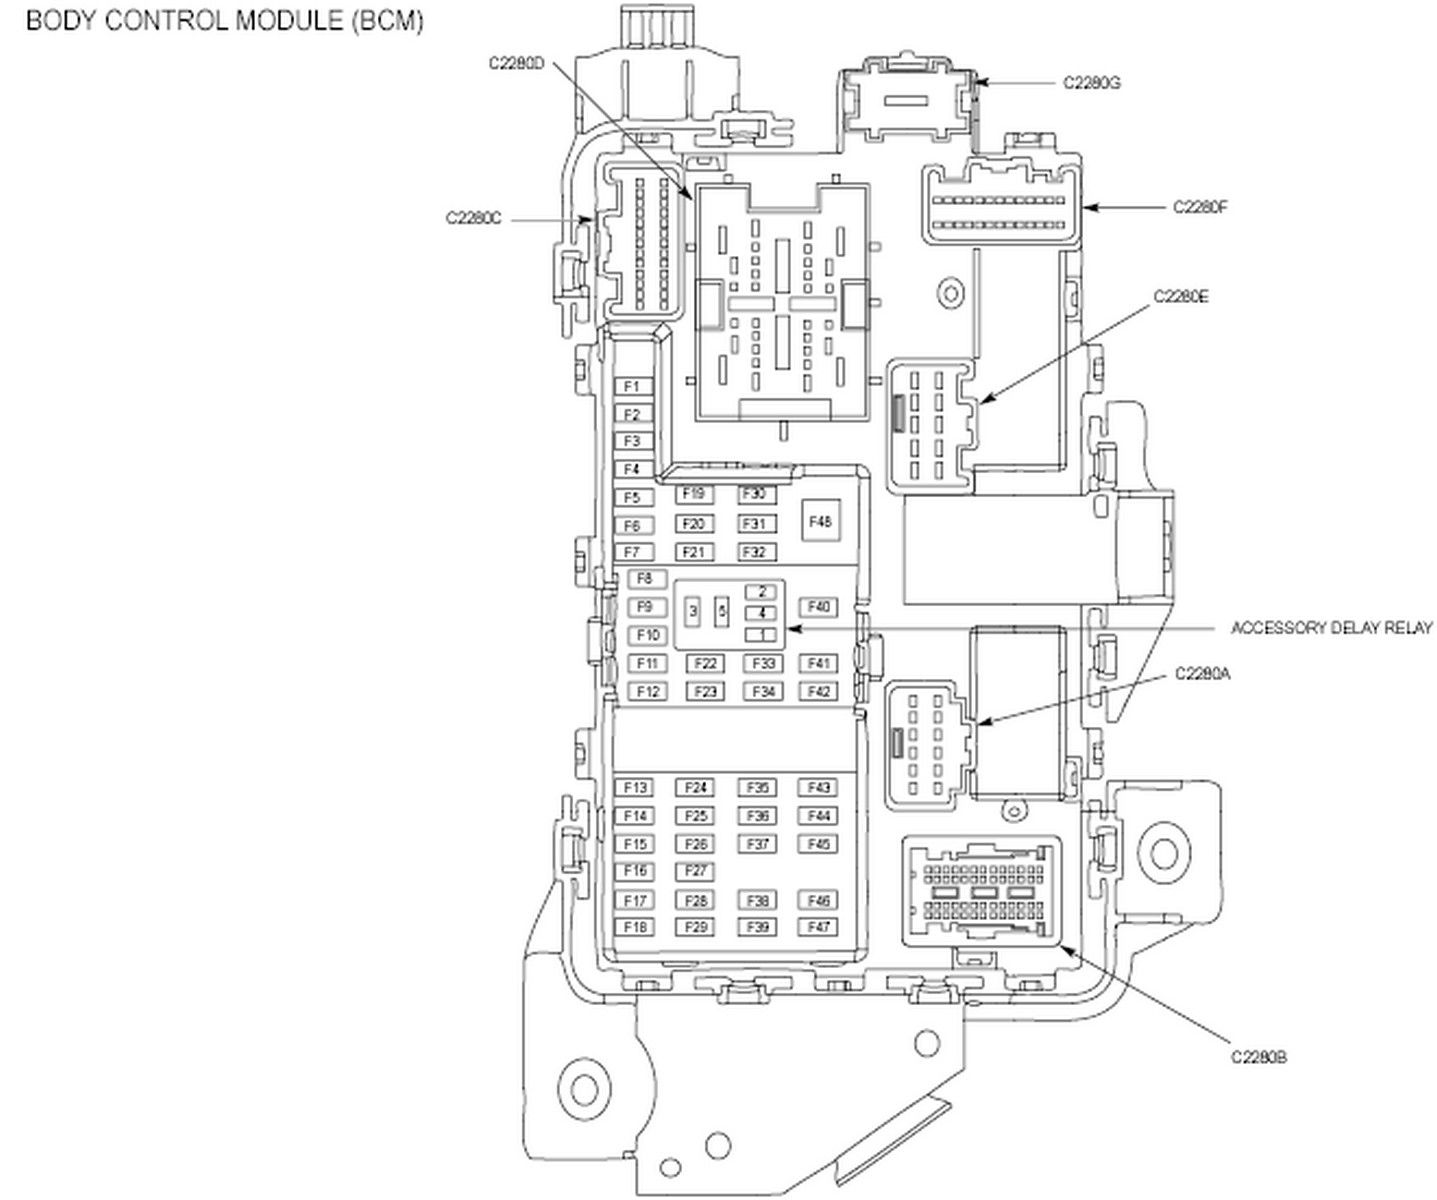 2012 ford body control module wiring diagram   44 wiring diagram images